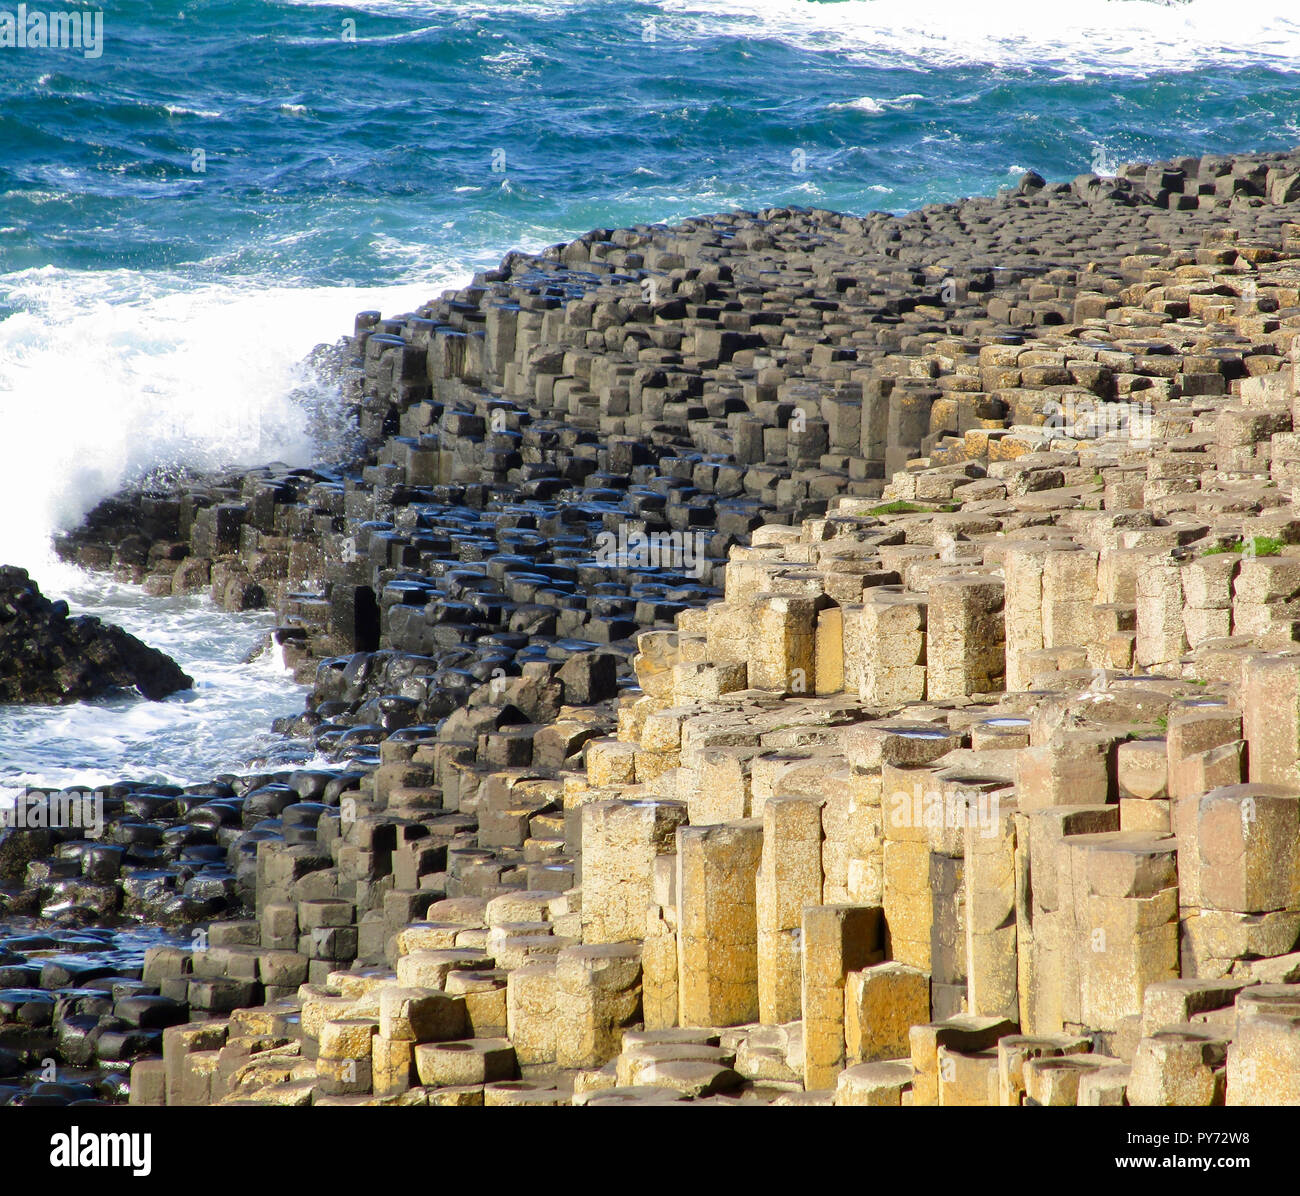 View of the hexagon shaped basalt stone columns in the landscape of Giant's Causeway in Northern Ireland Stock Photo